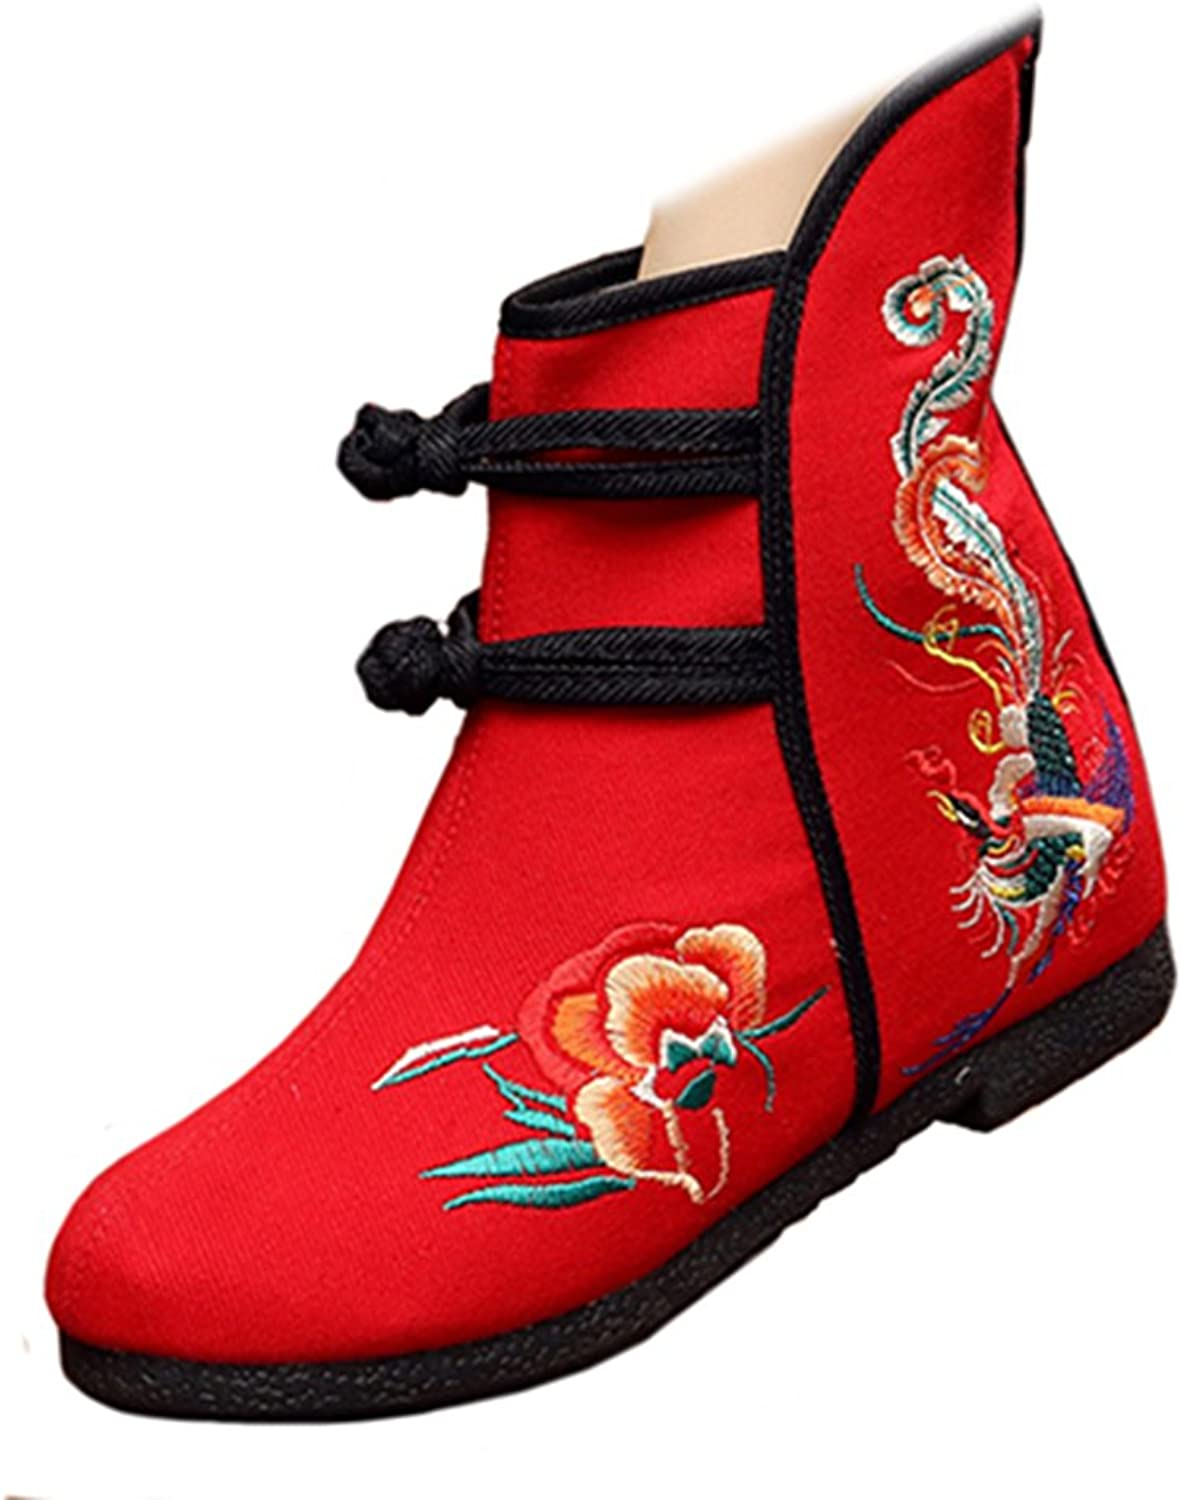 Shenghuajie Vintage Beijing Cloth shoes Embroidered Boots 12-01 red